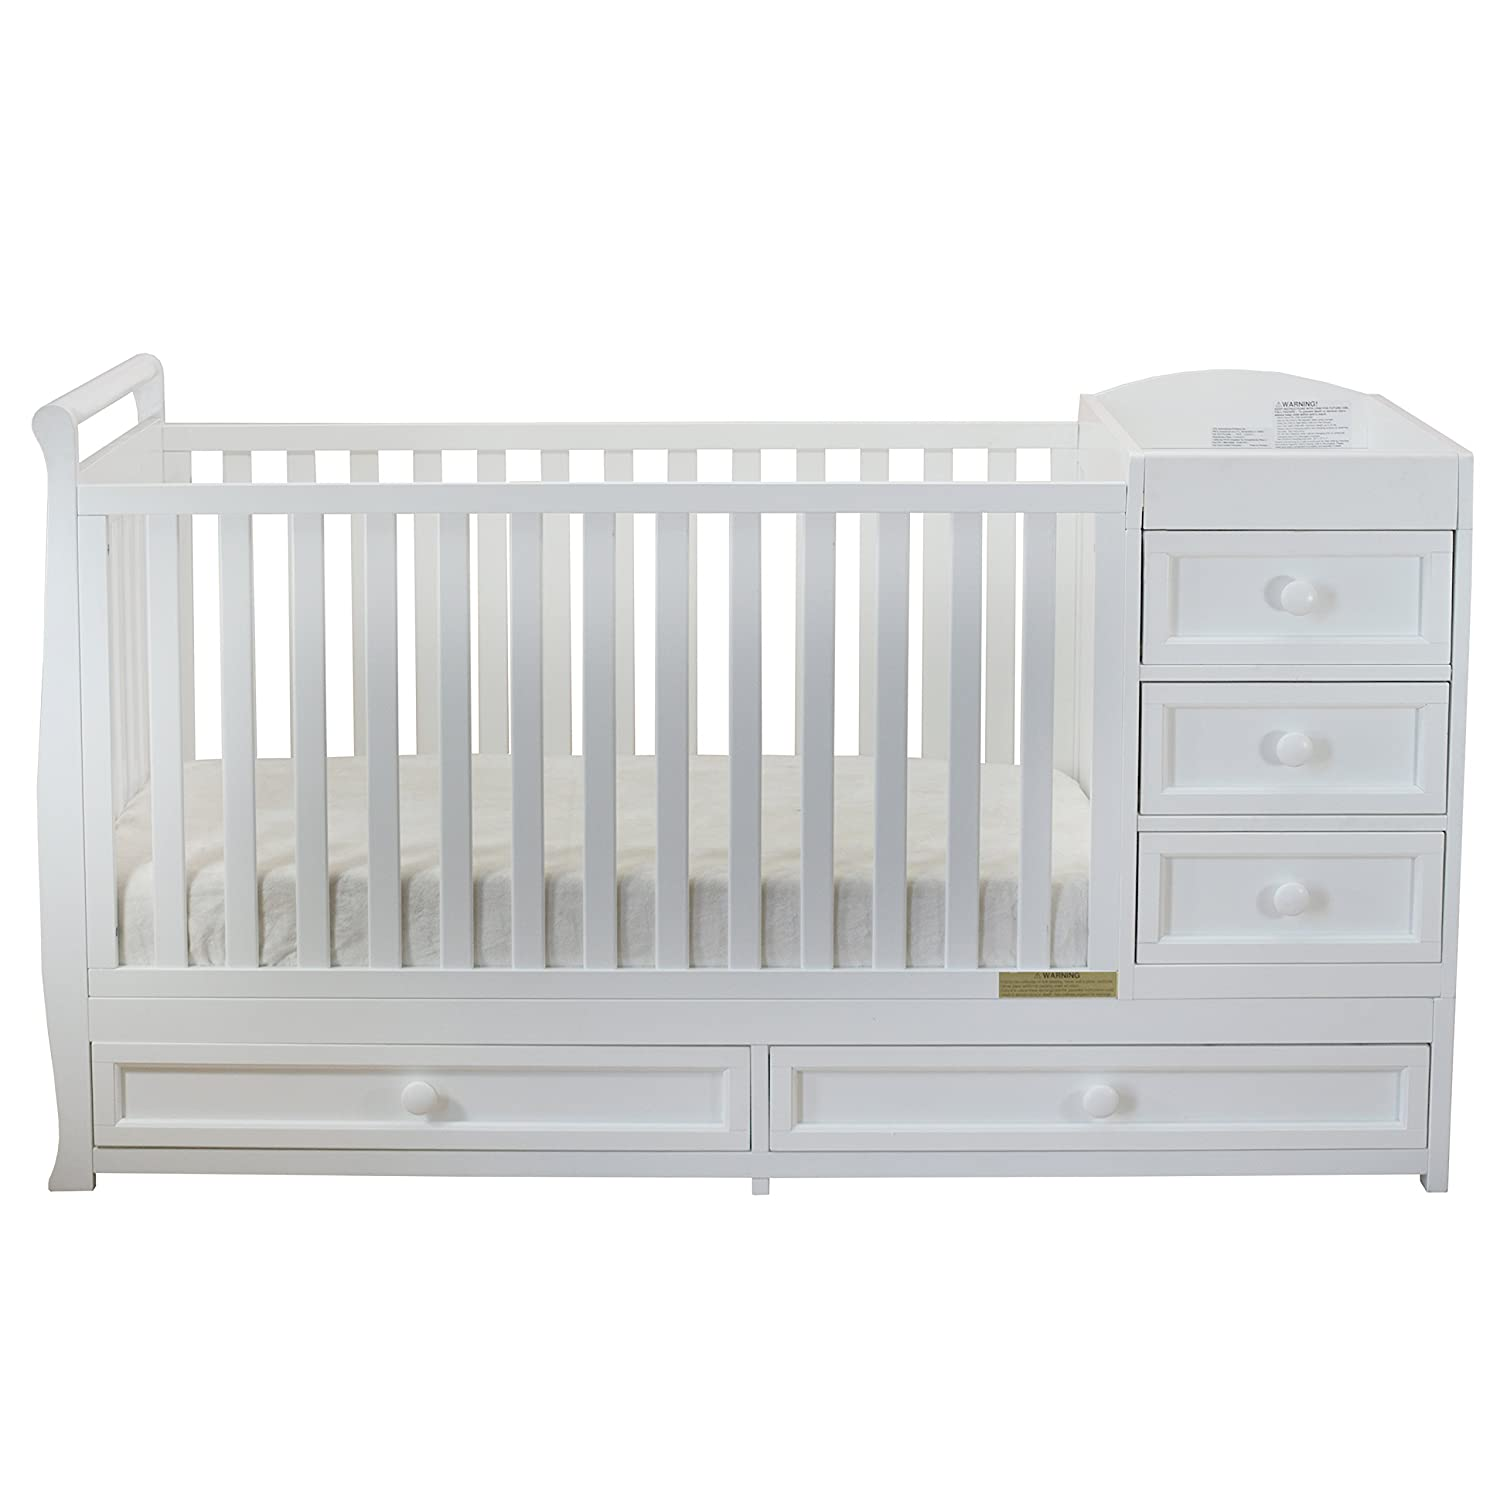 Amazon.com : Athena Daphne Convertible Crib and Changer, White : Baby